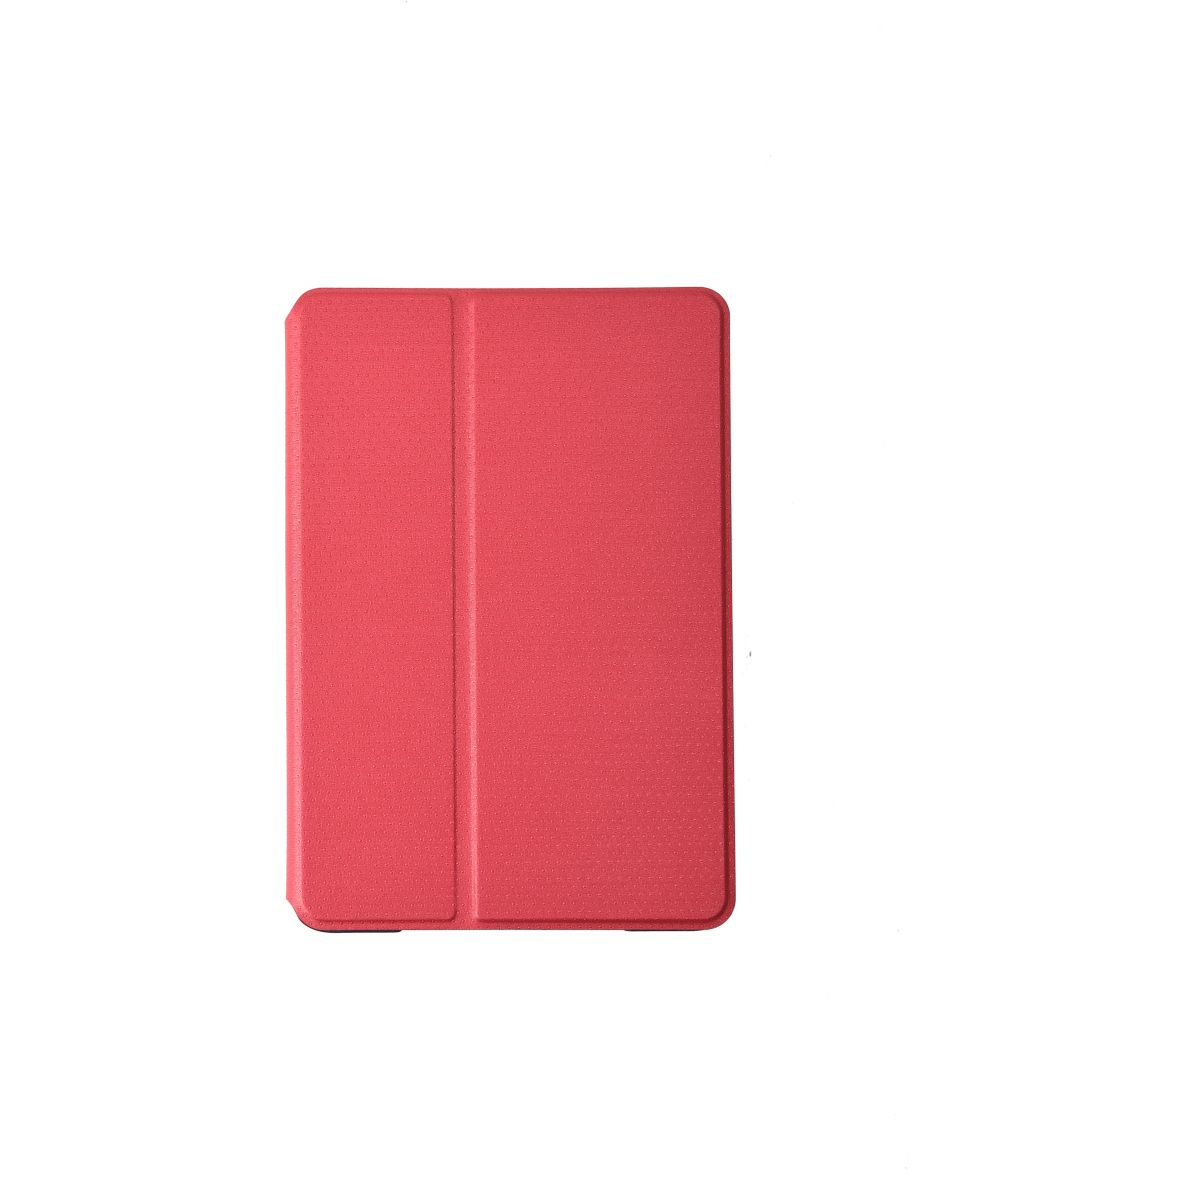 Etui ESSENTIELB iPad Mini 2/3 rotatif Rouge (photo)